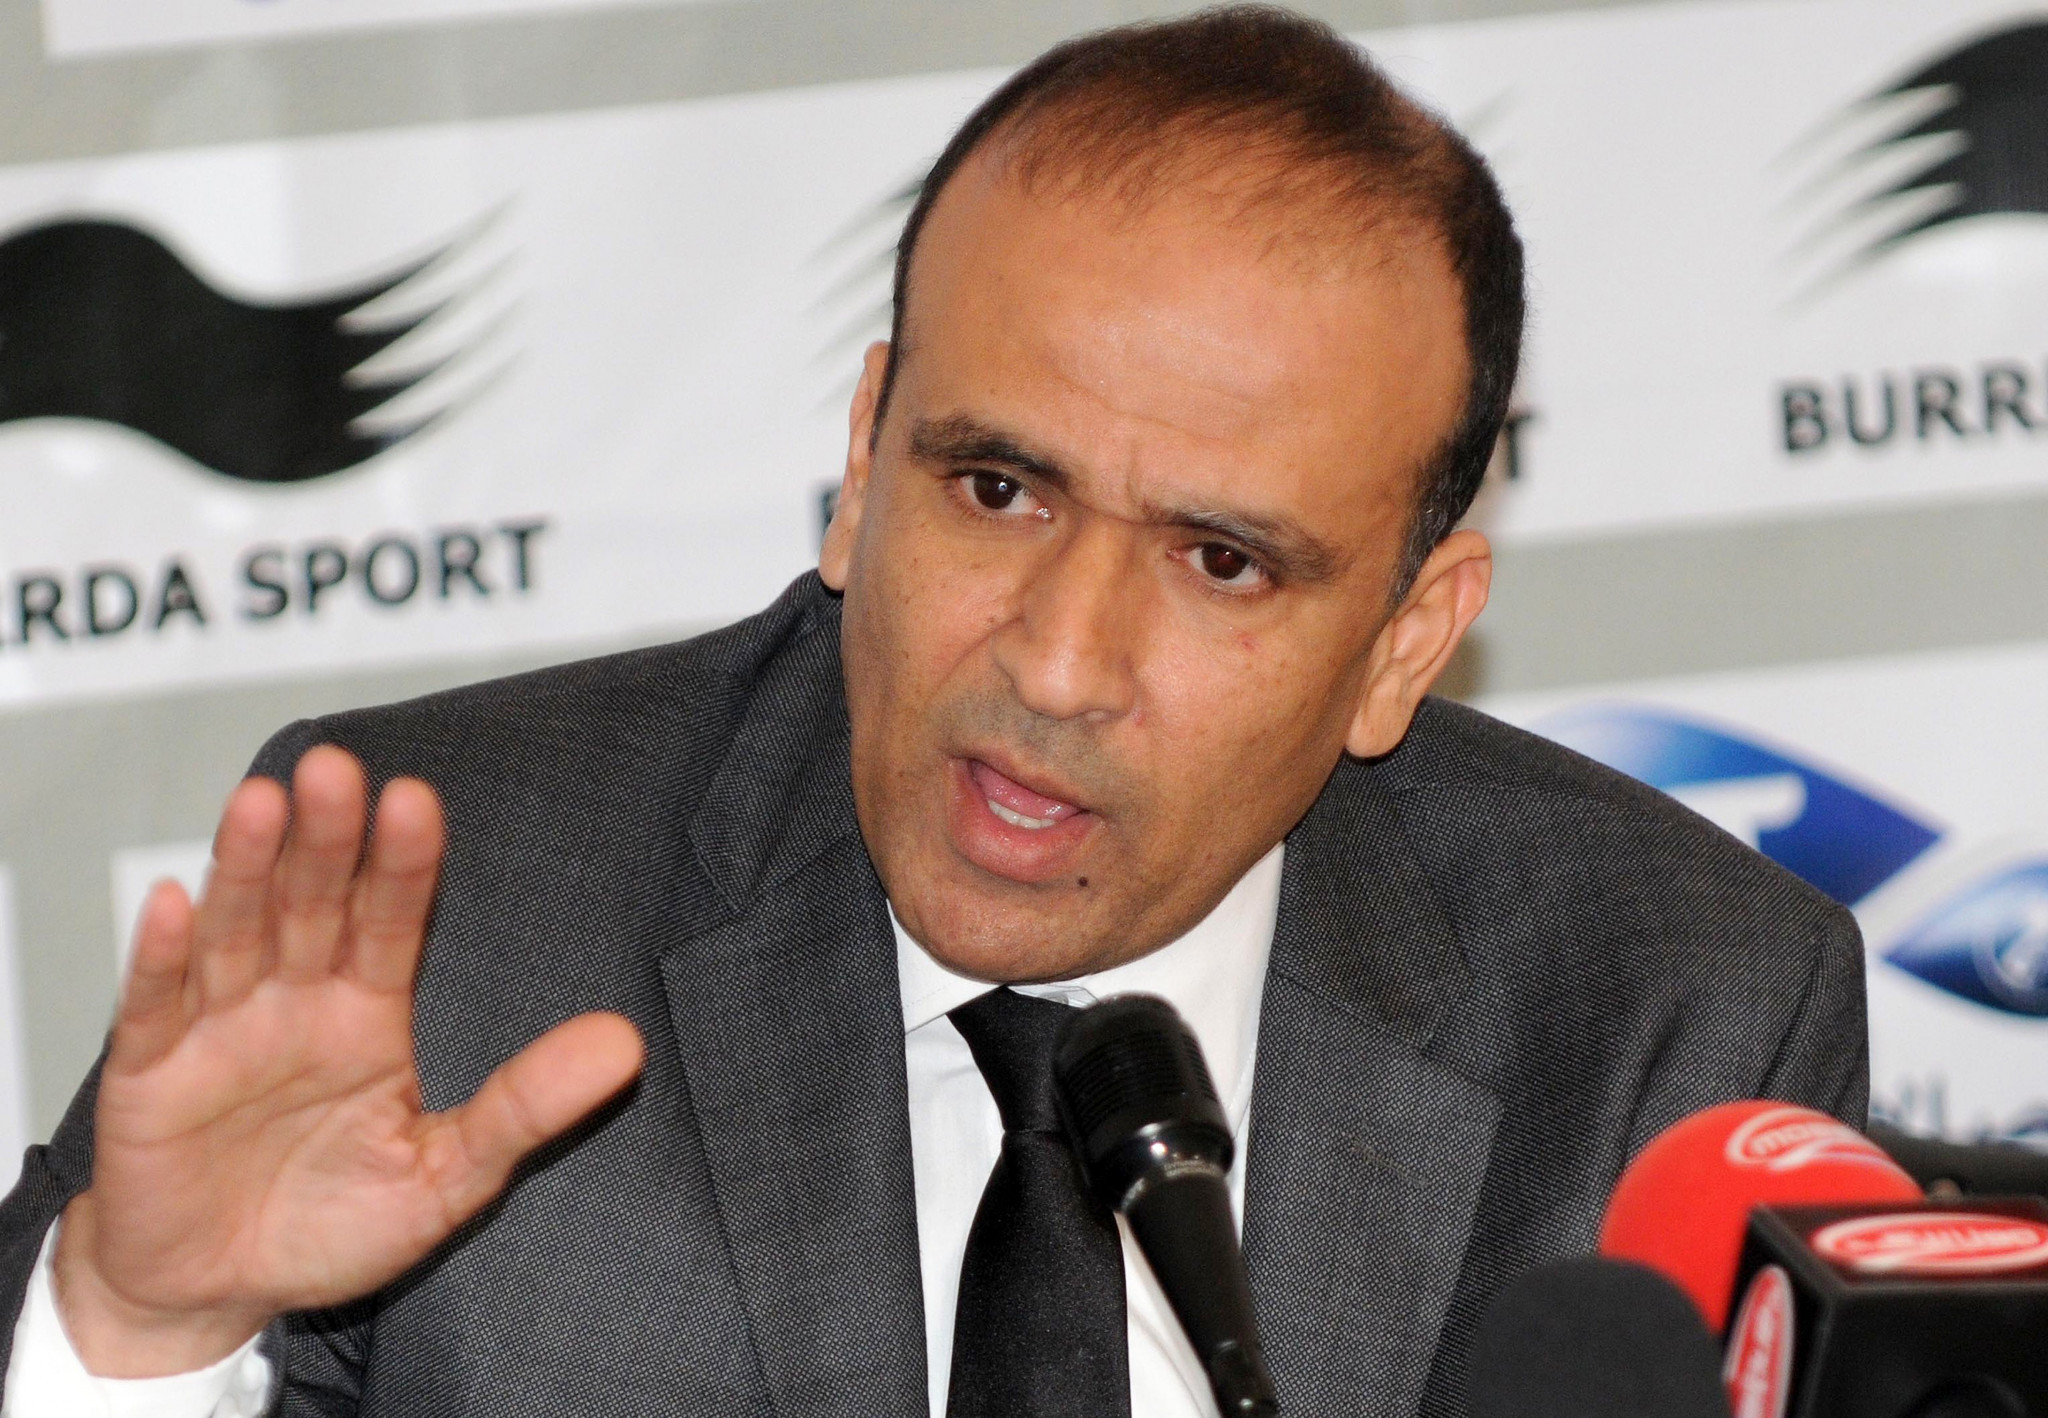 CRISIS BREW AHEAD OF CAF ELECTION AS CLEARED TUNISIAN CANDIDATE IS BANNED AT HOME